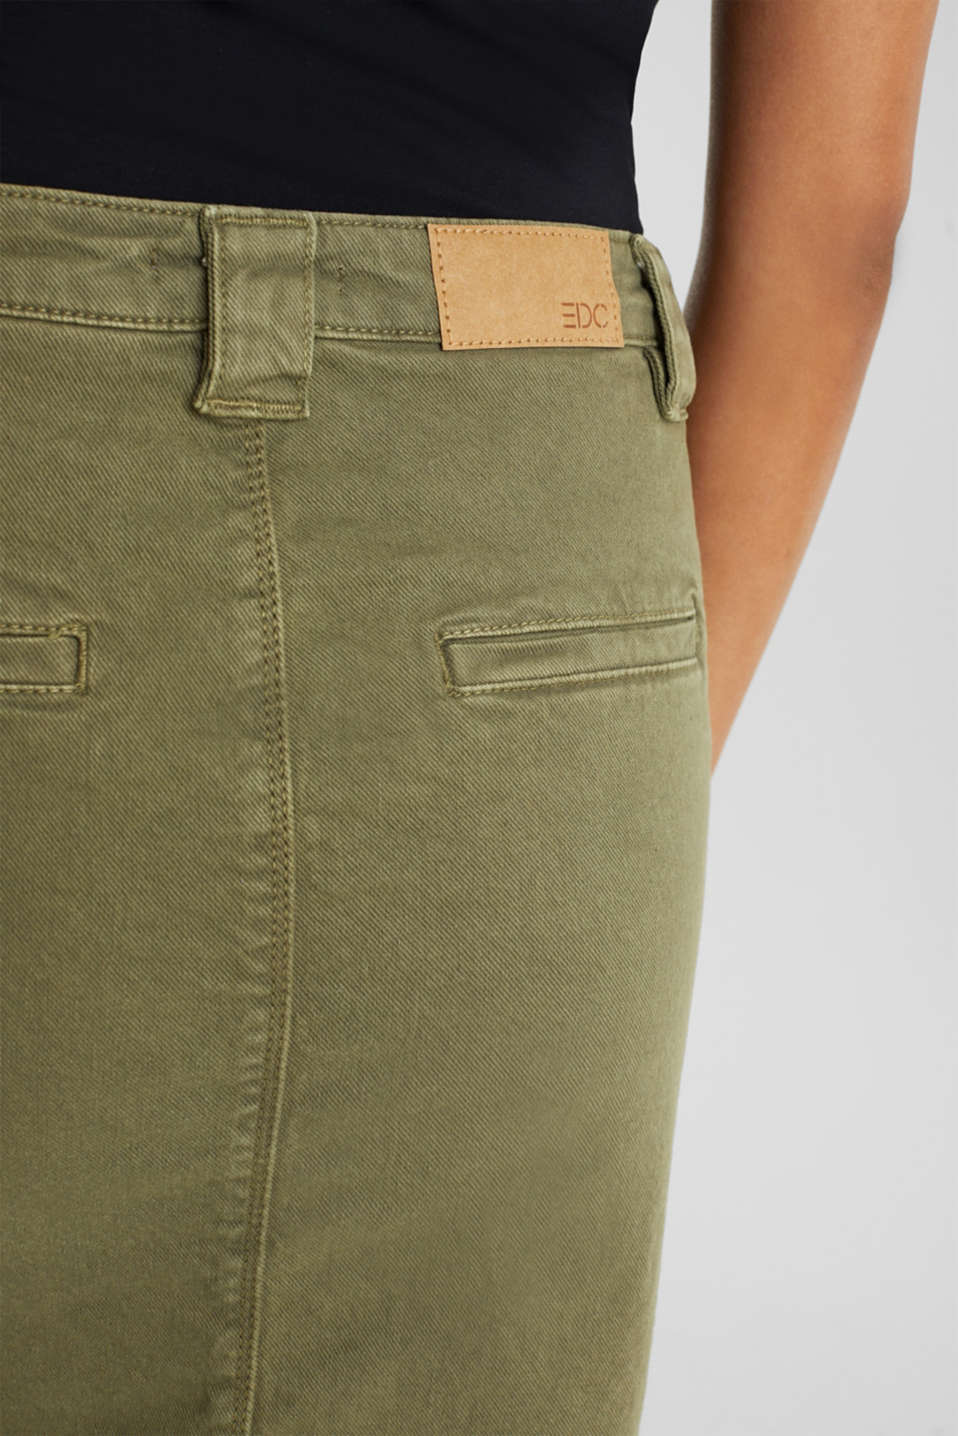 Denim skirt with pockets, KHAKI GREEN, detail image number 4